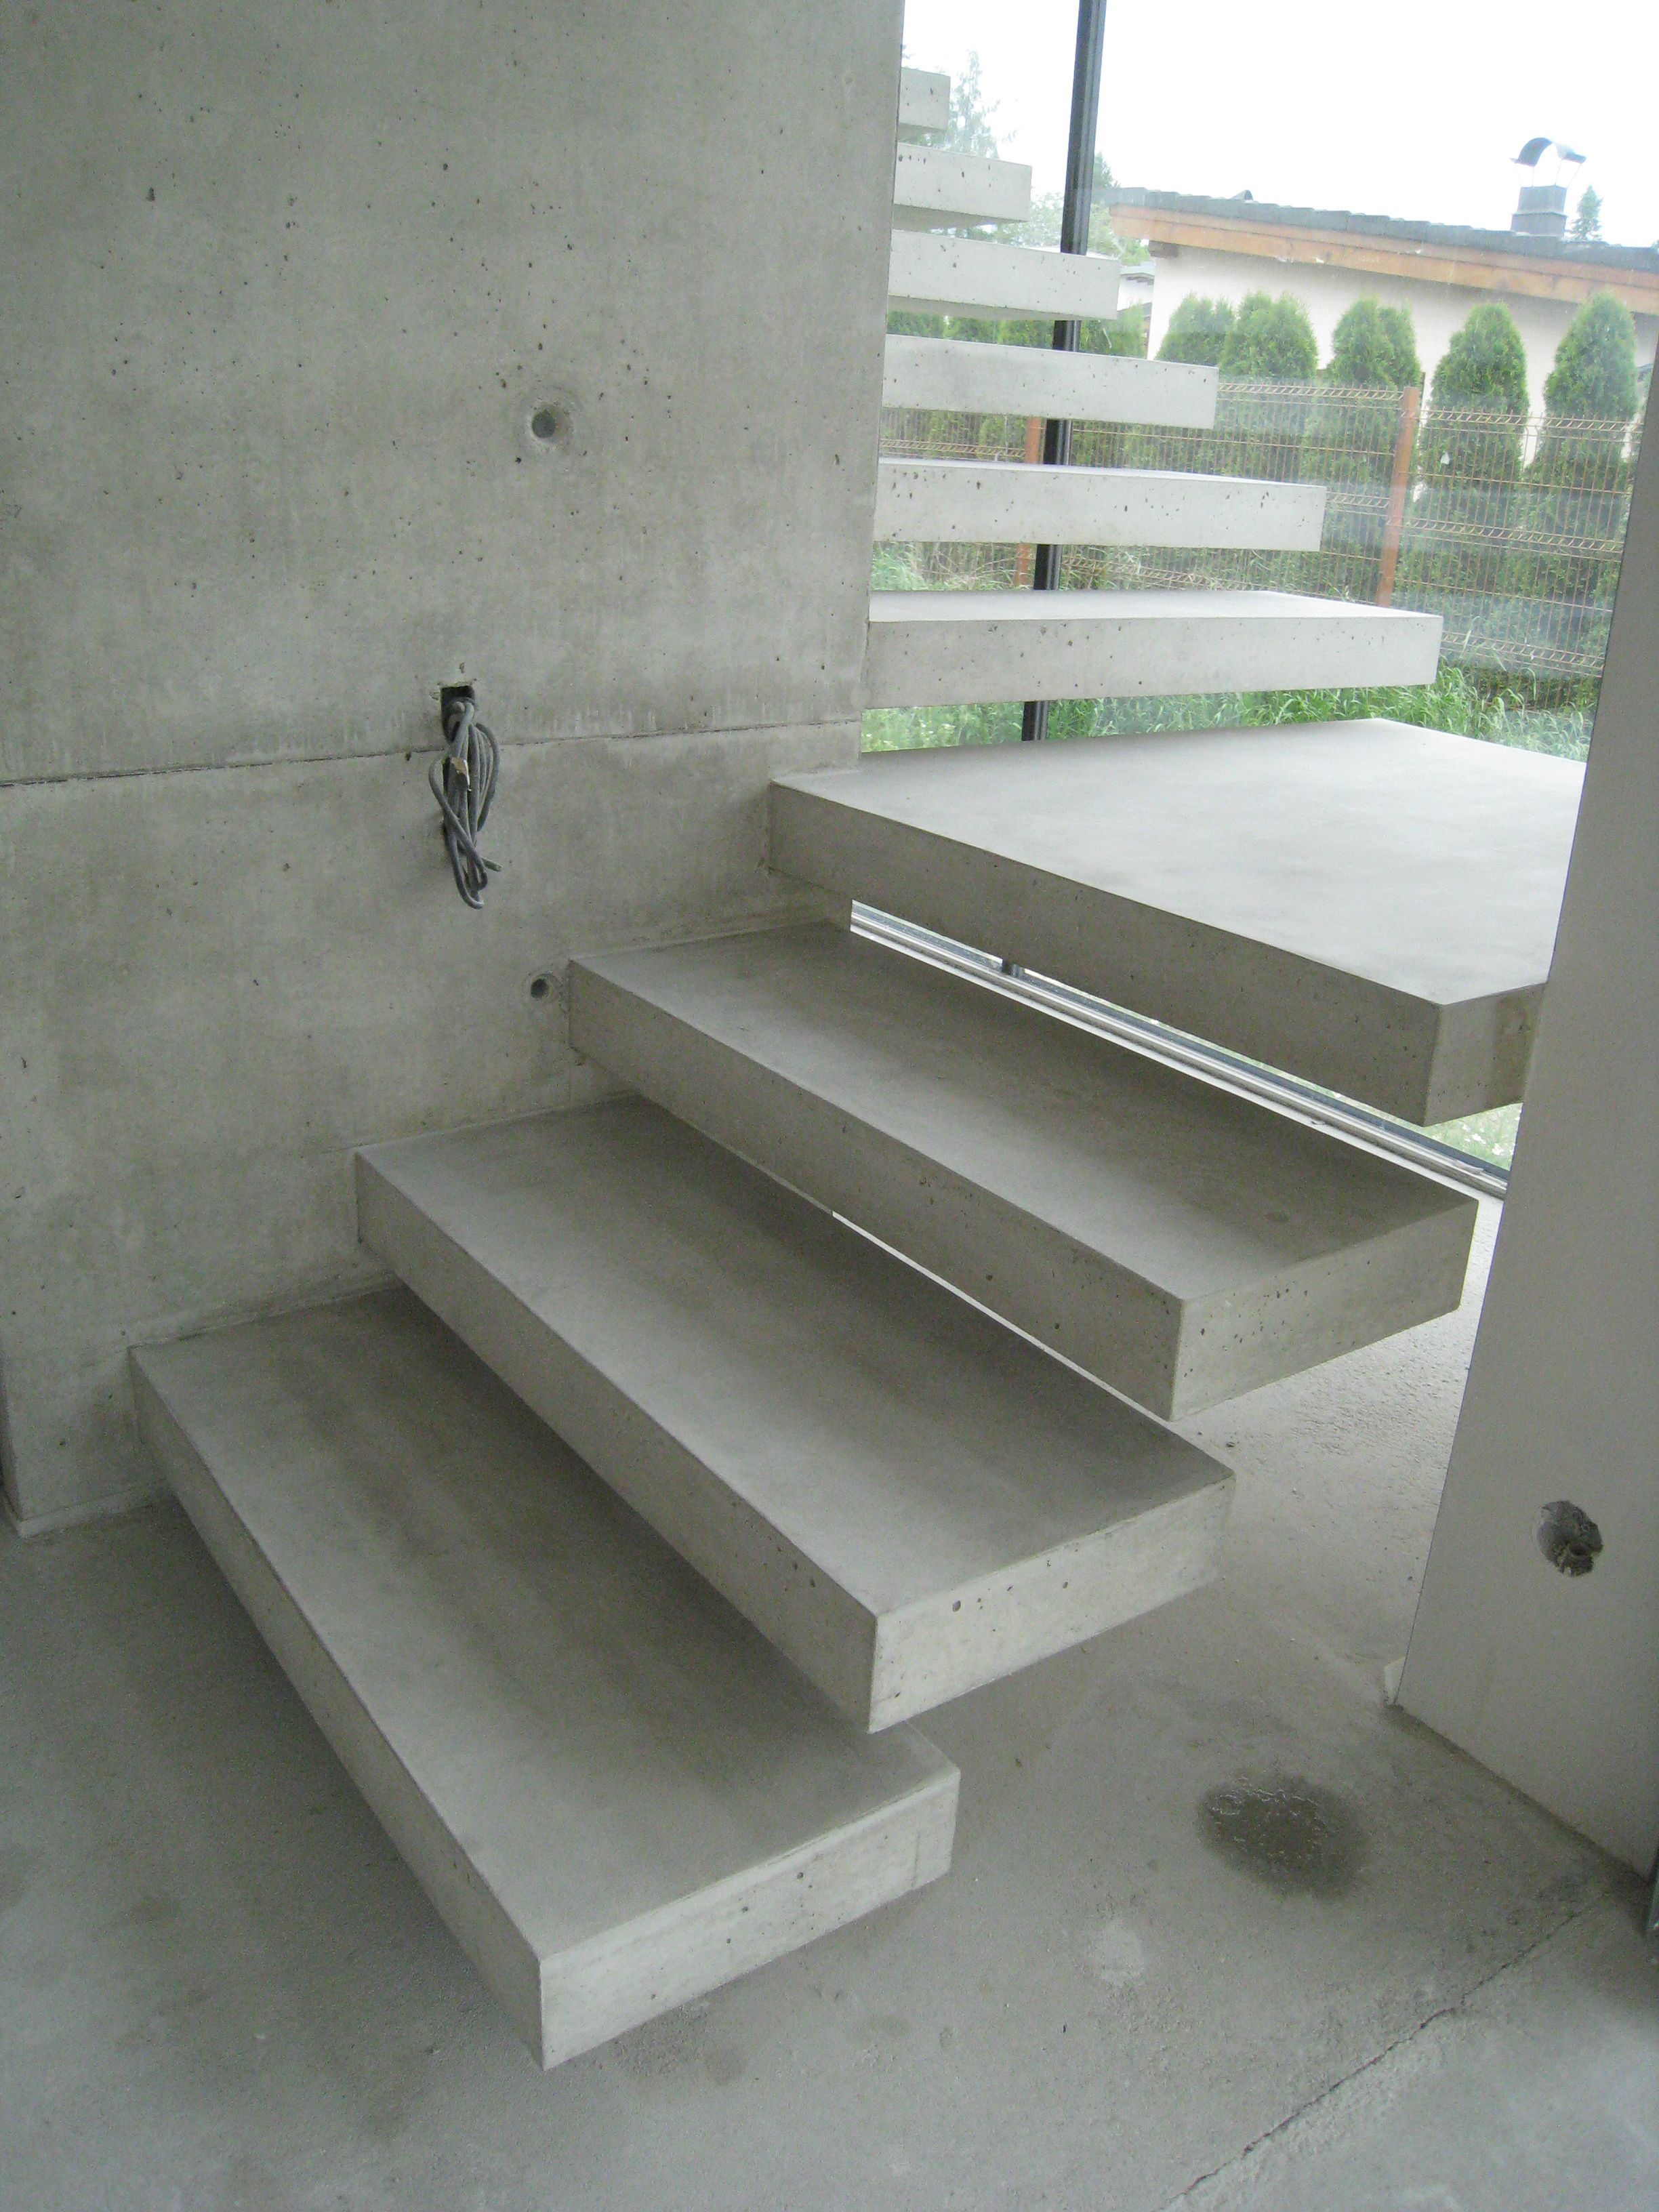 How To Build Floating Stairs Floating Concrete Stairs And Landing Stairs We Love At